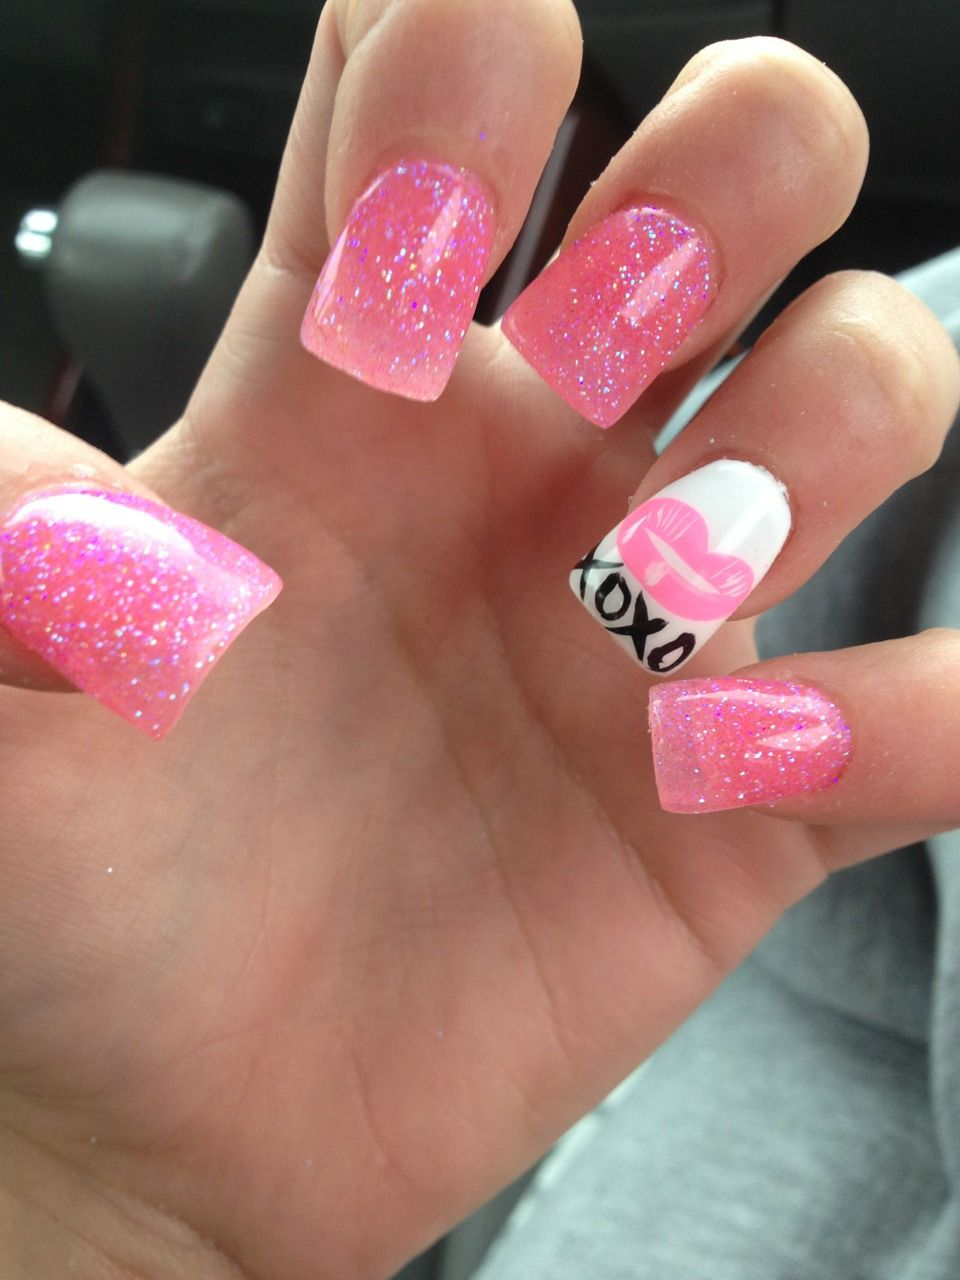 Dont Like The Wide Nail But I Love The Polish Color And Xoxo